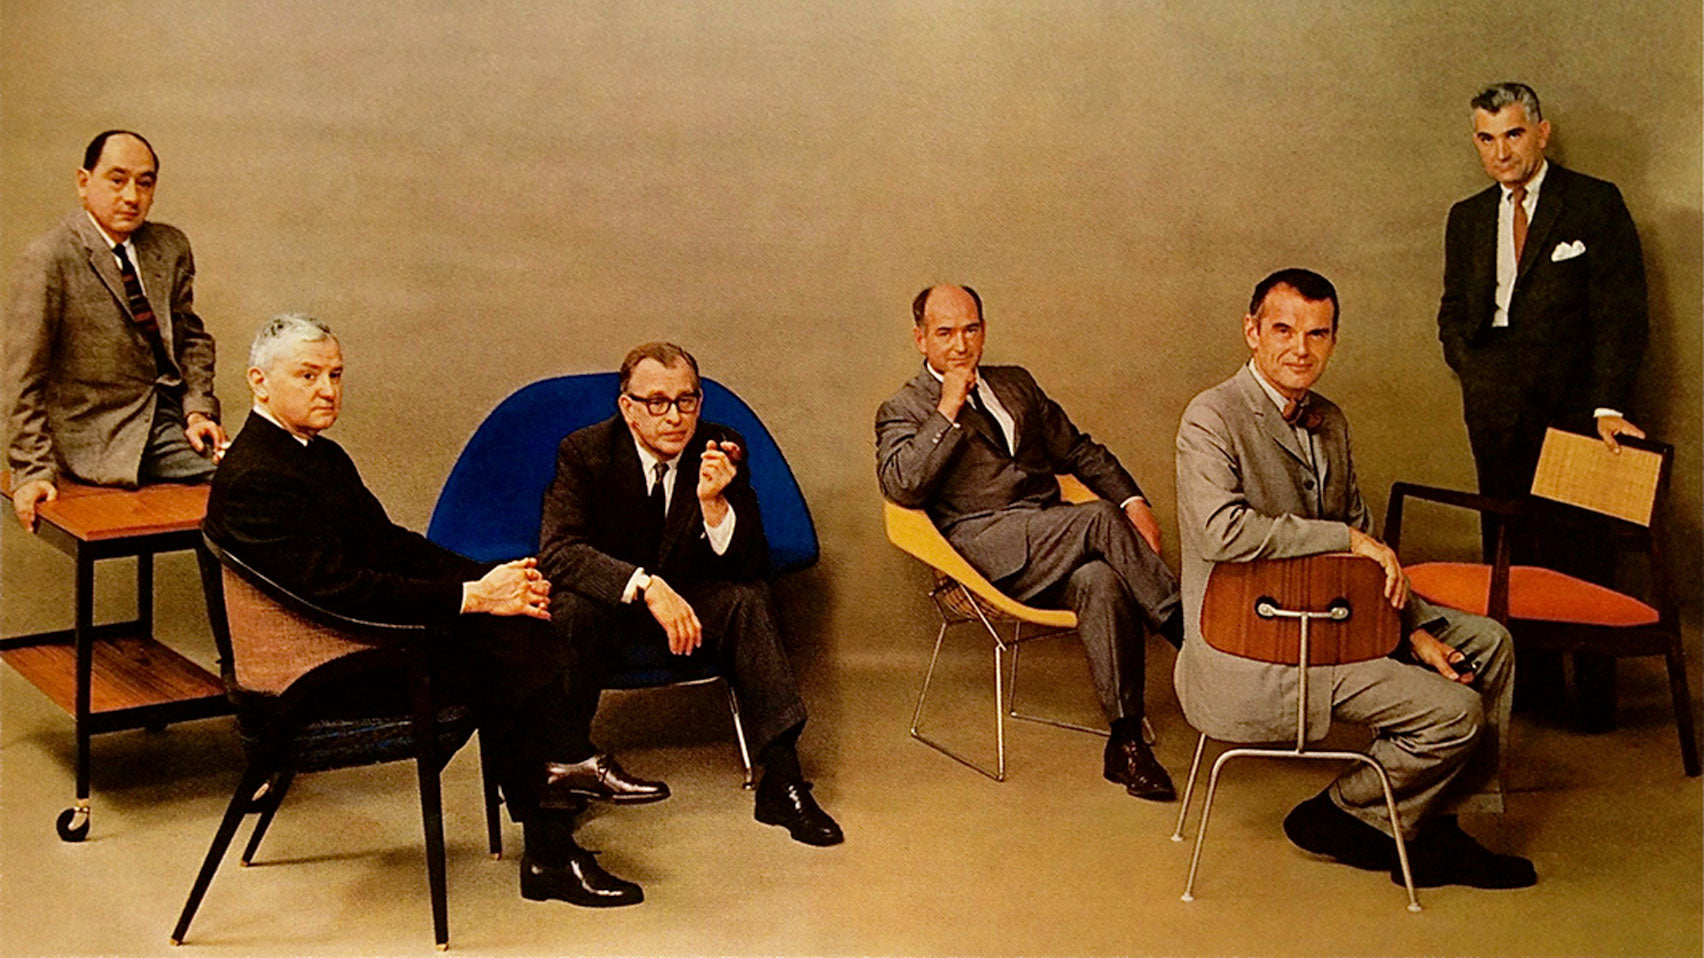 ens Risom featured in a 1961 spread titled Design For Living in Playboy magazine (far right), beside fellow mid-century designers Charles Eames, Harry Bertoia, Eero Saarinen, Edward Wormley and George Nelson